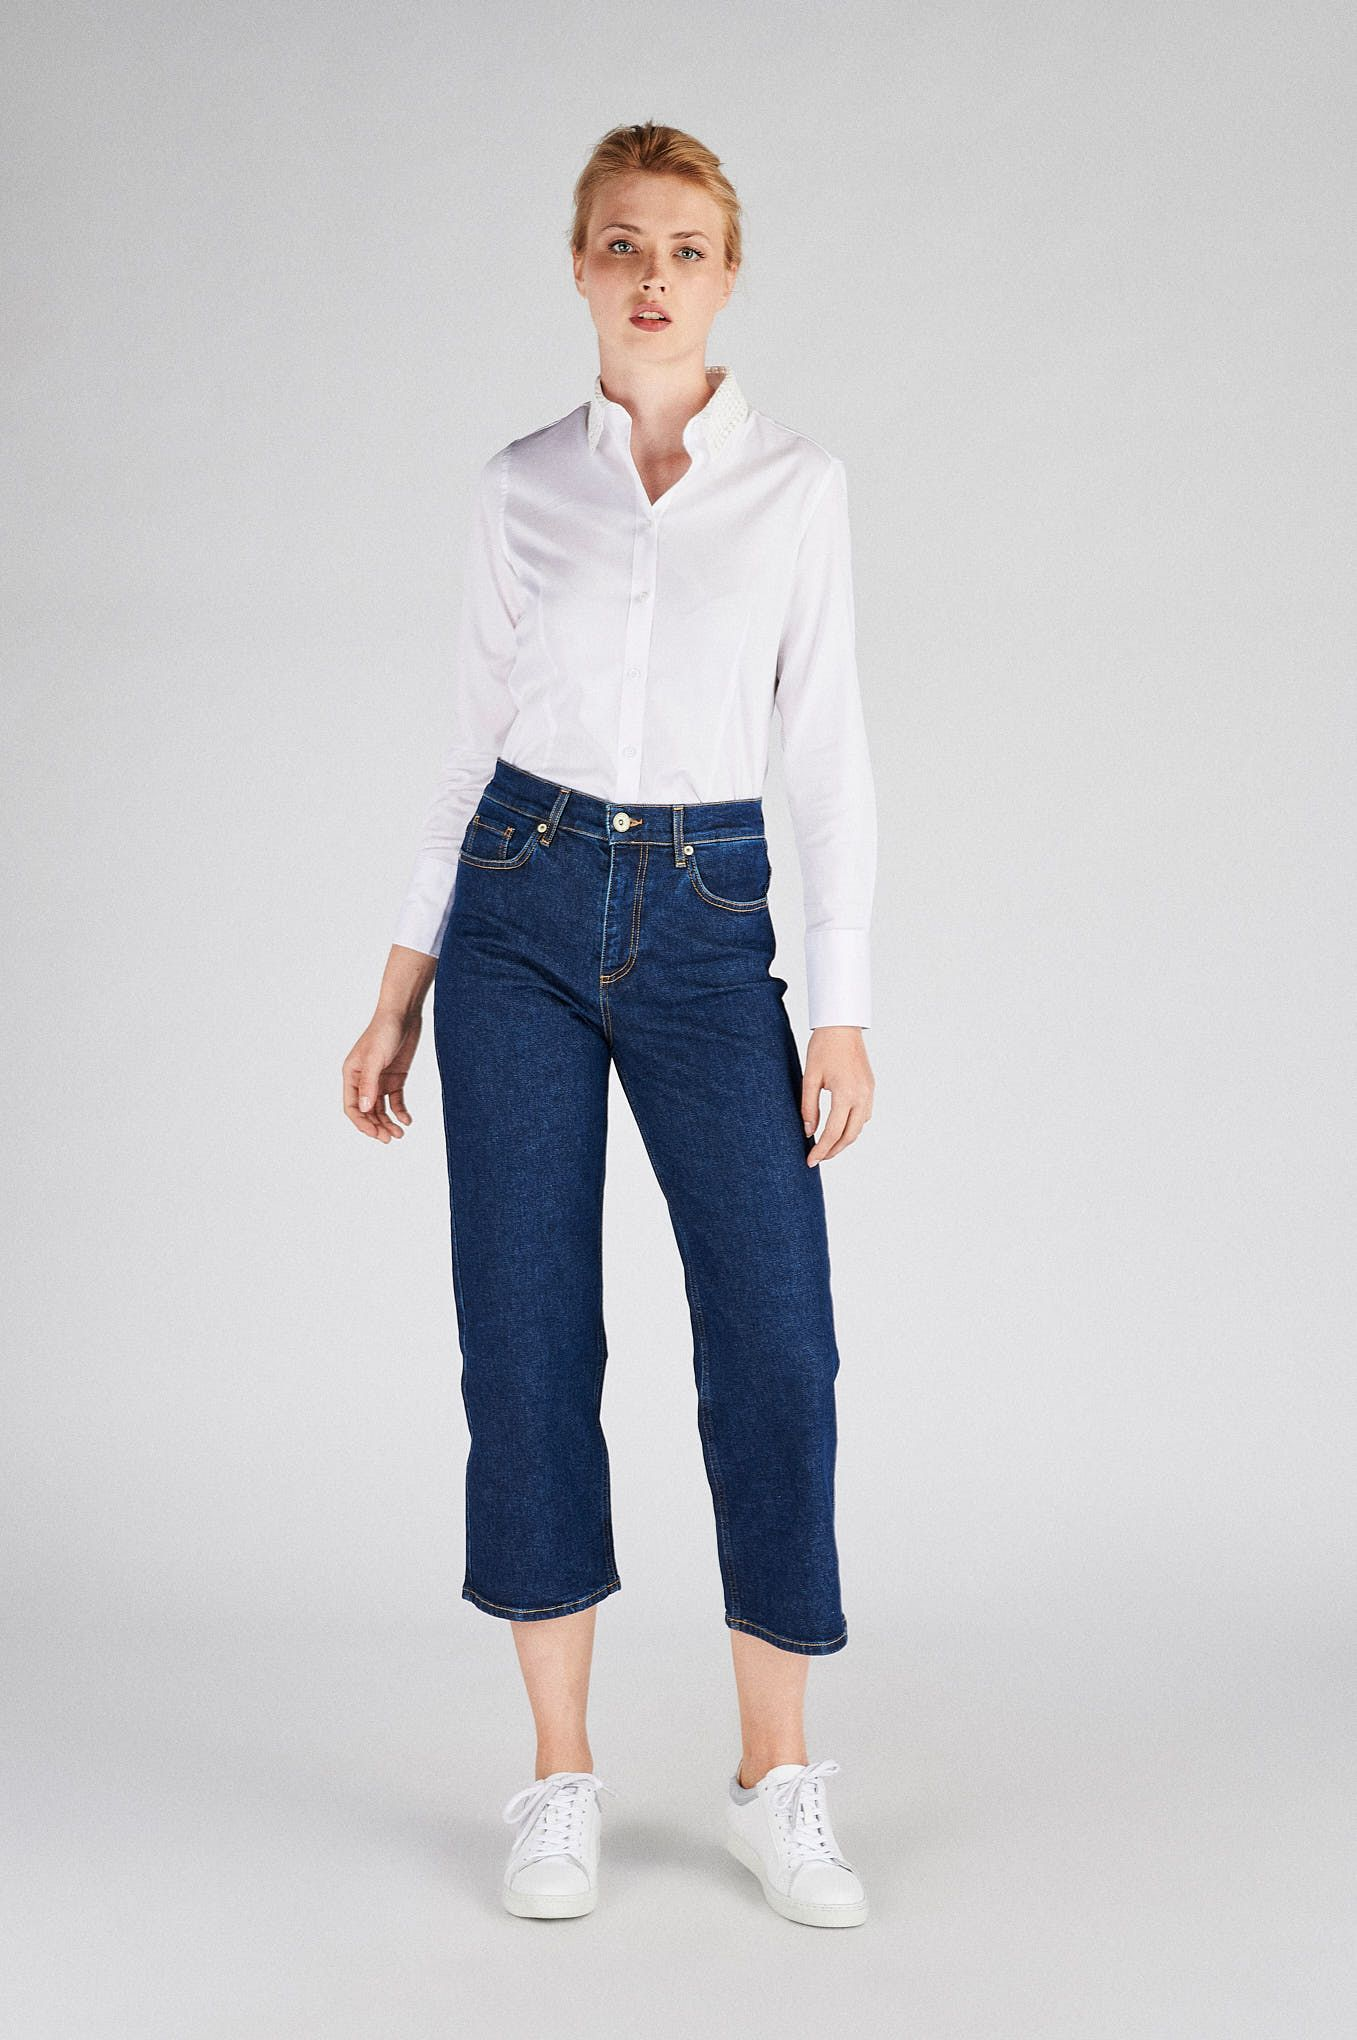 Women s  Classic Slim Fit Shirt With Lace Collar